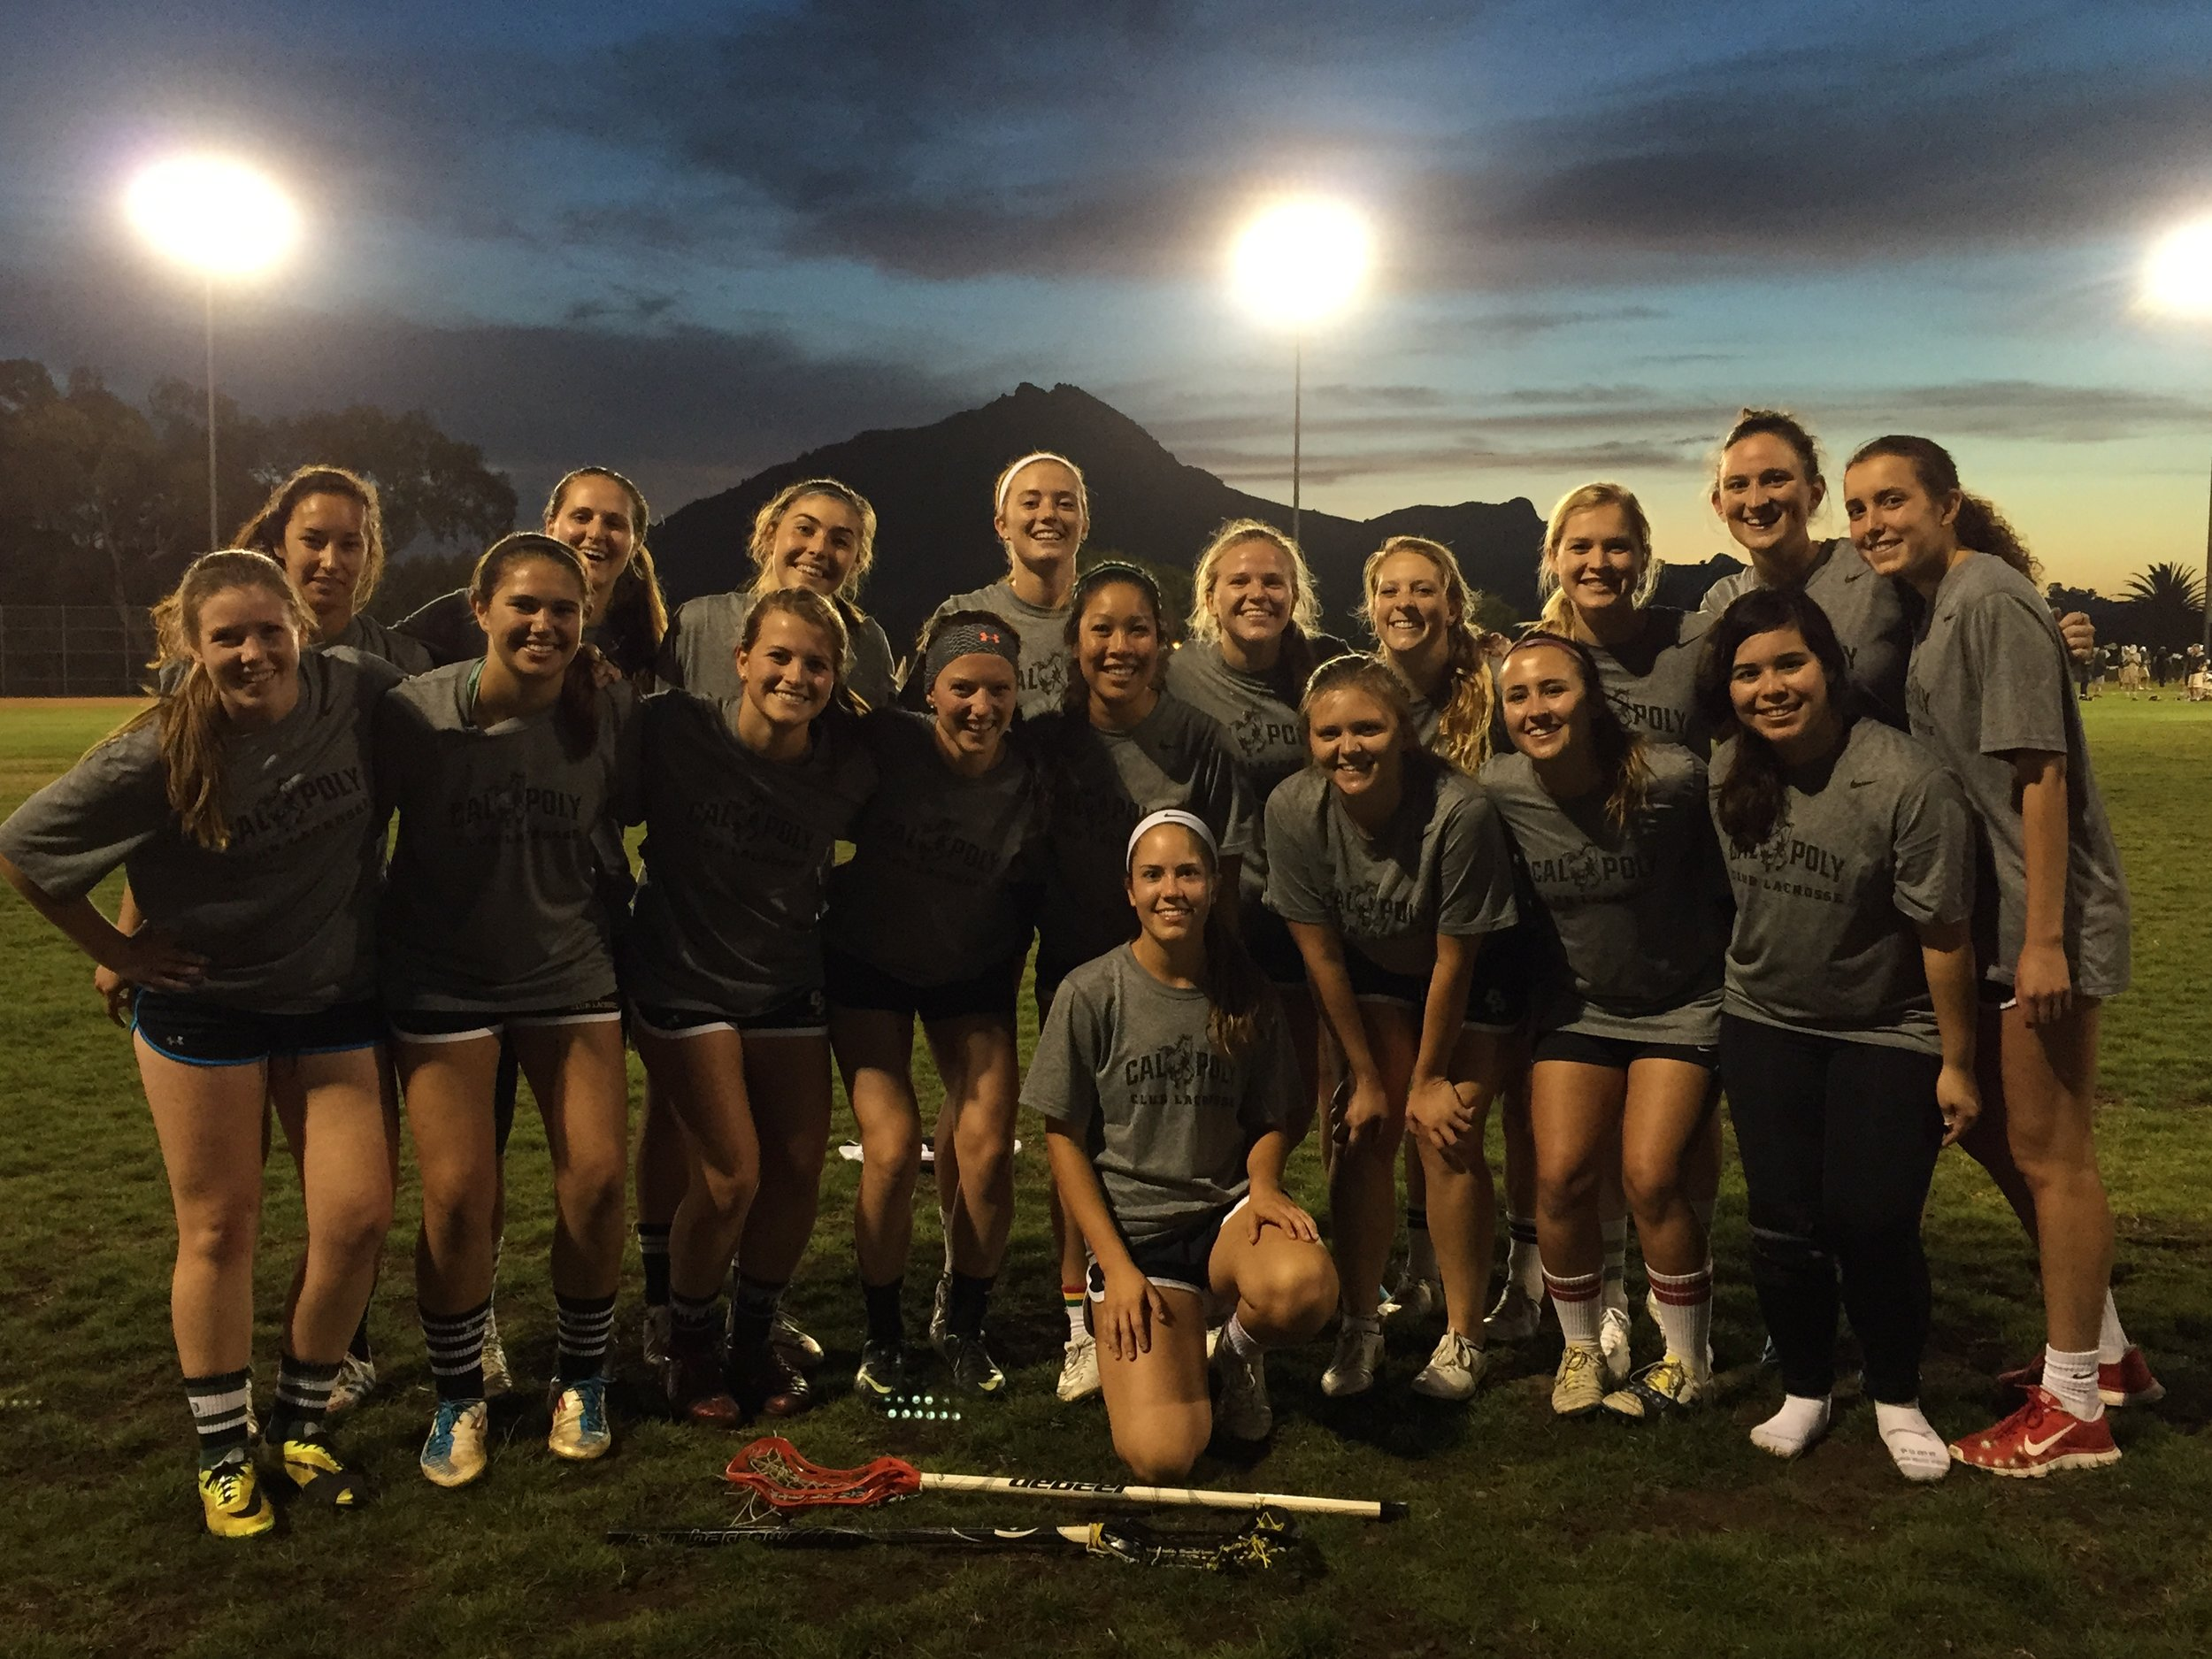 Erin's College lax team!! She probably got another yellow card during this game…